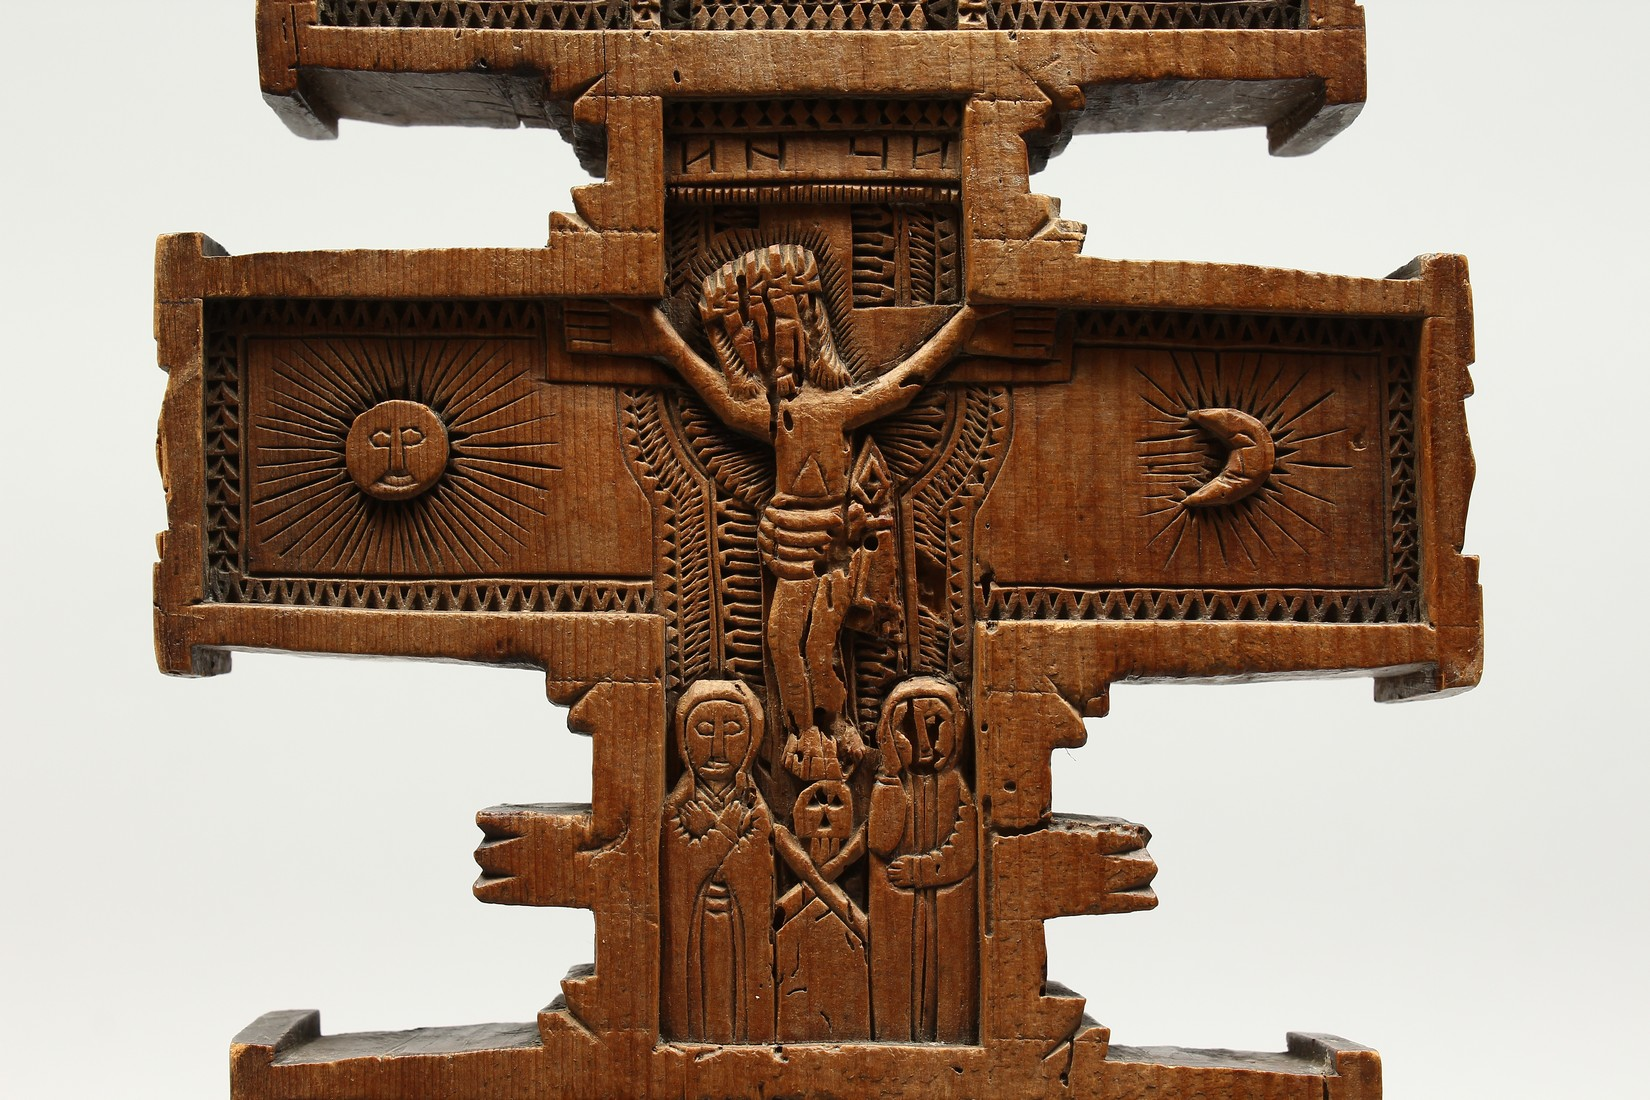 AN 18TH CENTURY GREEK CARVED WOODEN CROSS. 15ins long. - Image 8 of 11